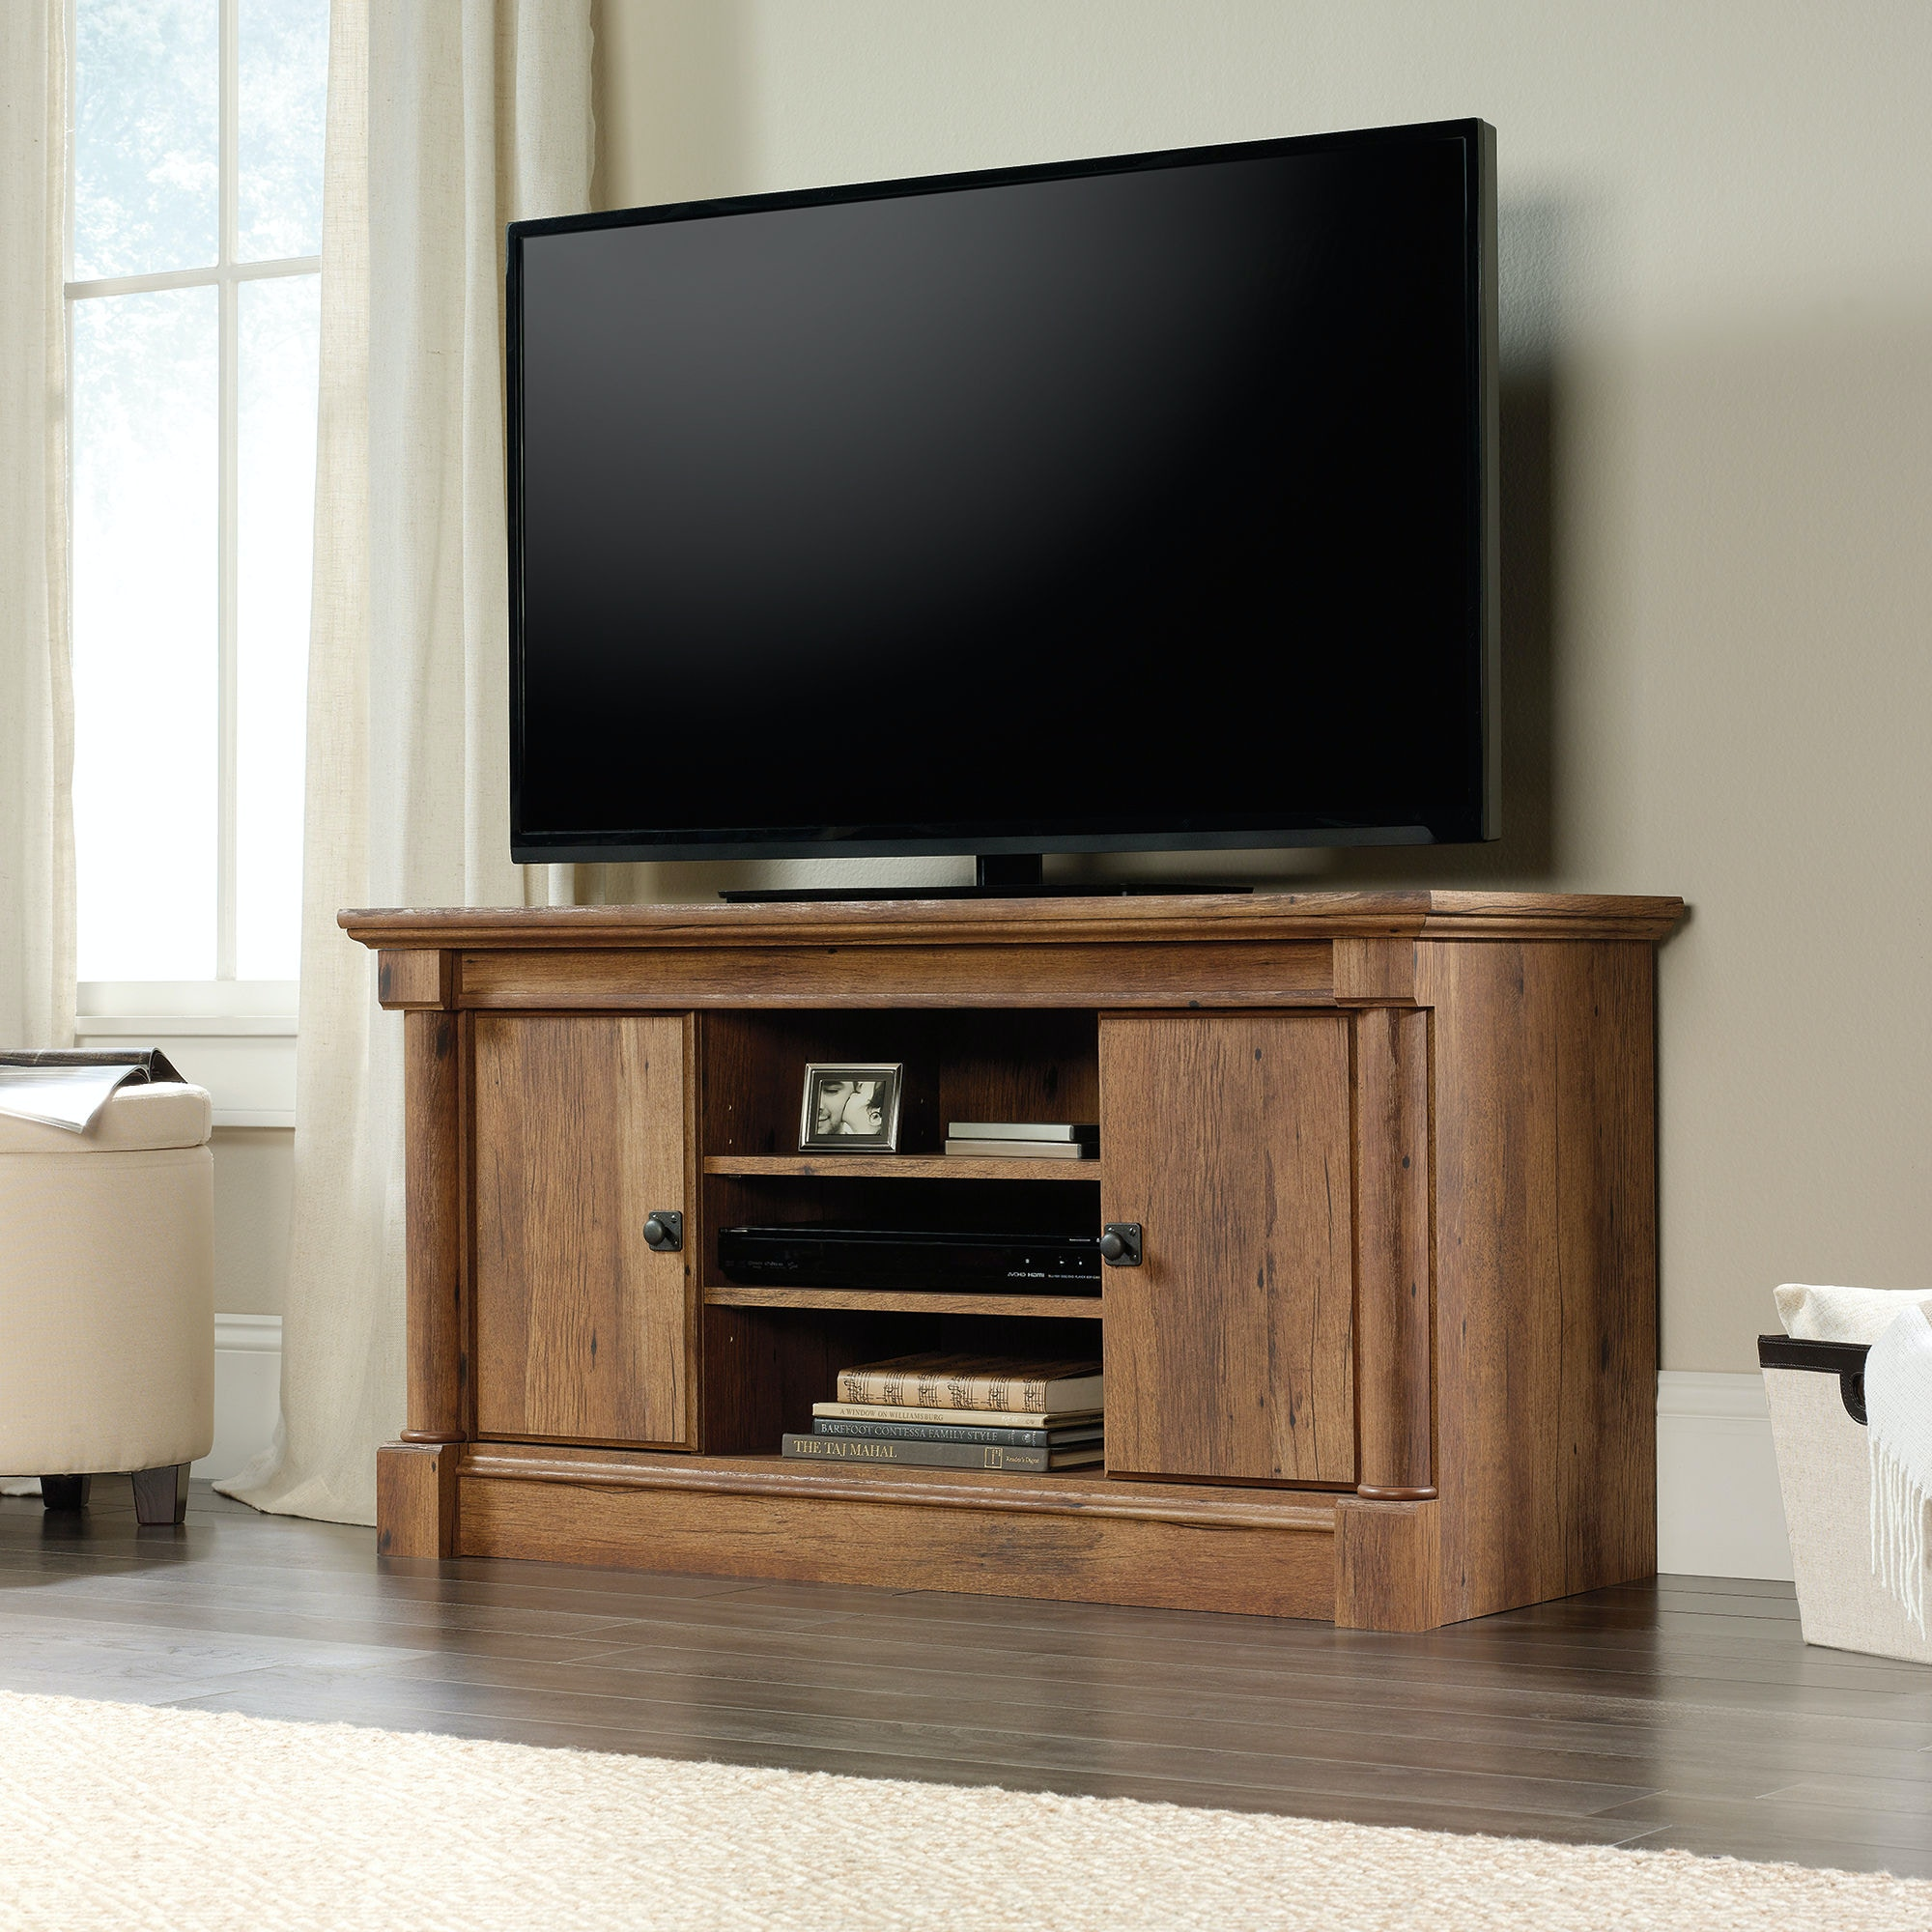 High Quality Sauder Living Room TV Stand 420605 At Fiore Furniture Company